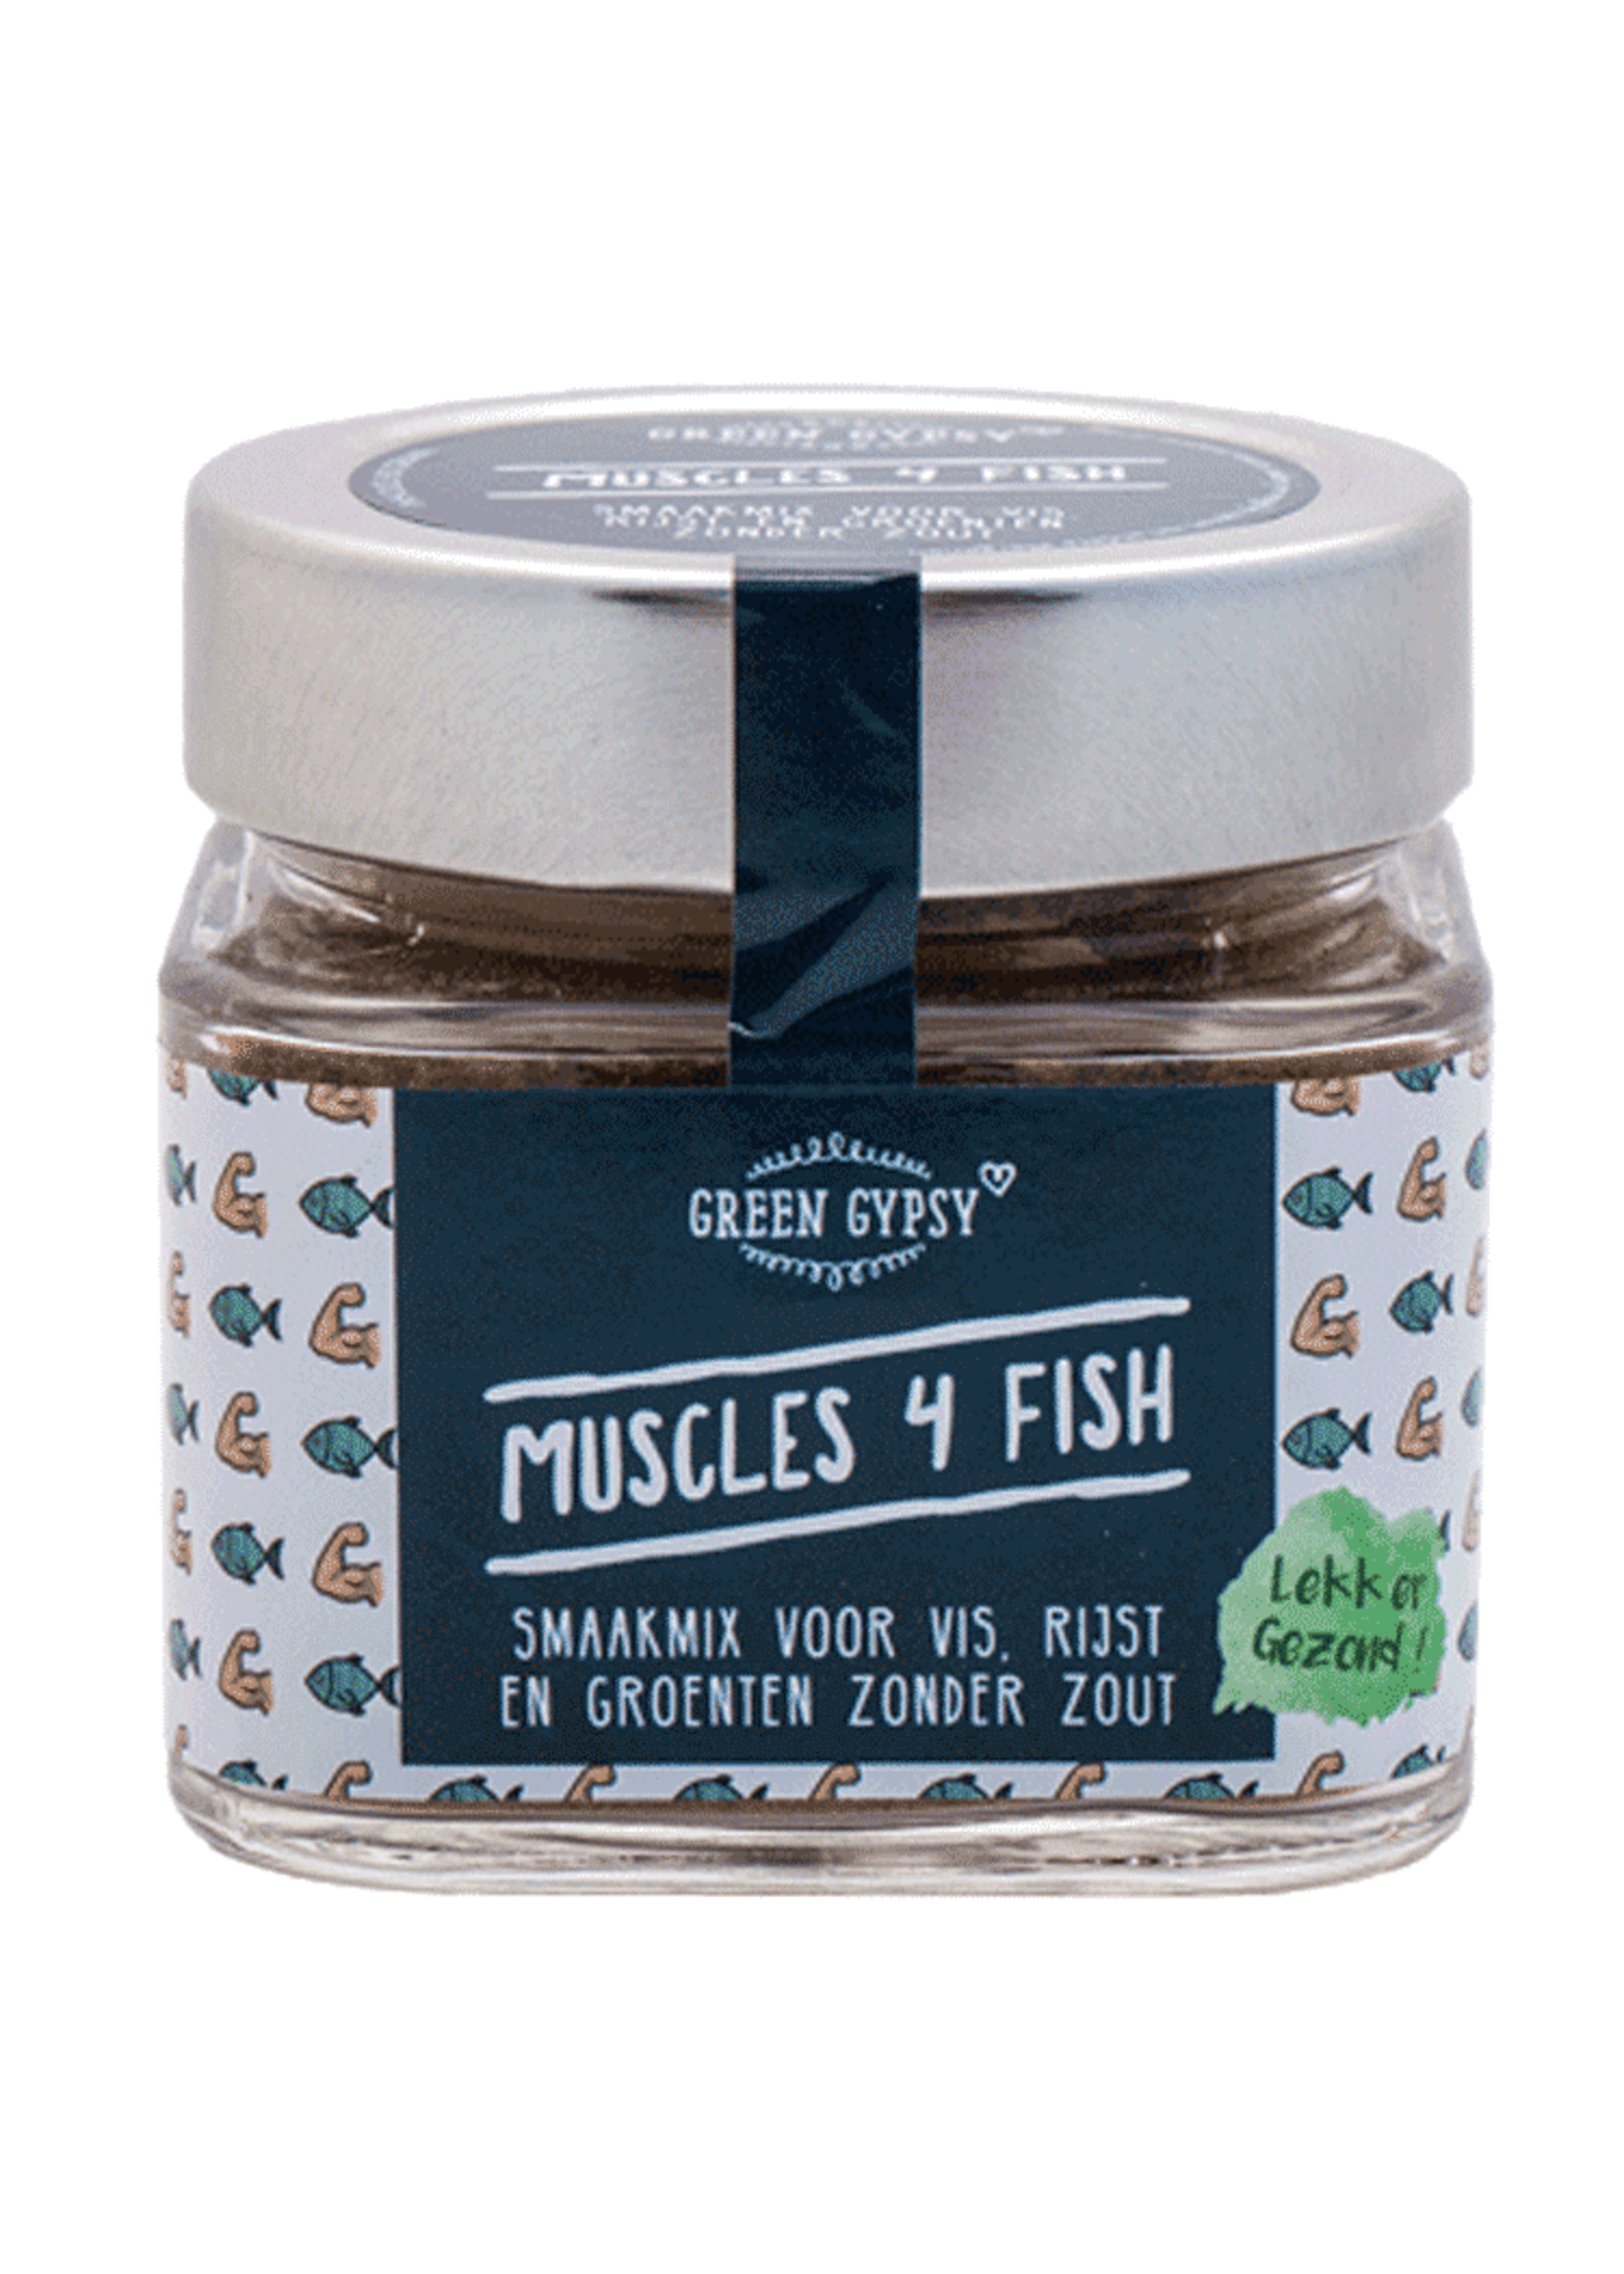 Green Gypsy Spices Kruidenmix Muscles 4 Fish Green Gypsy